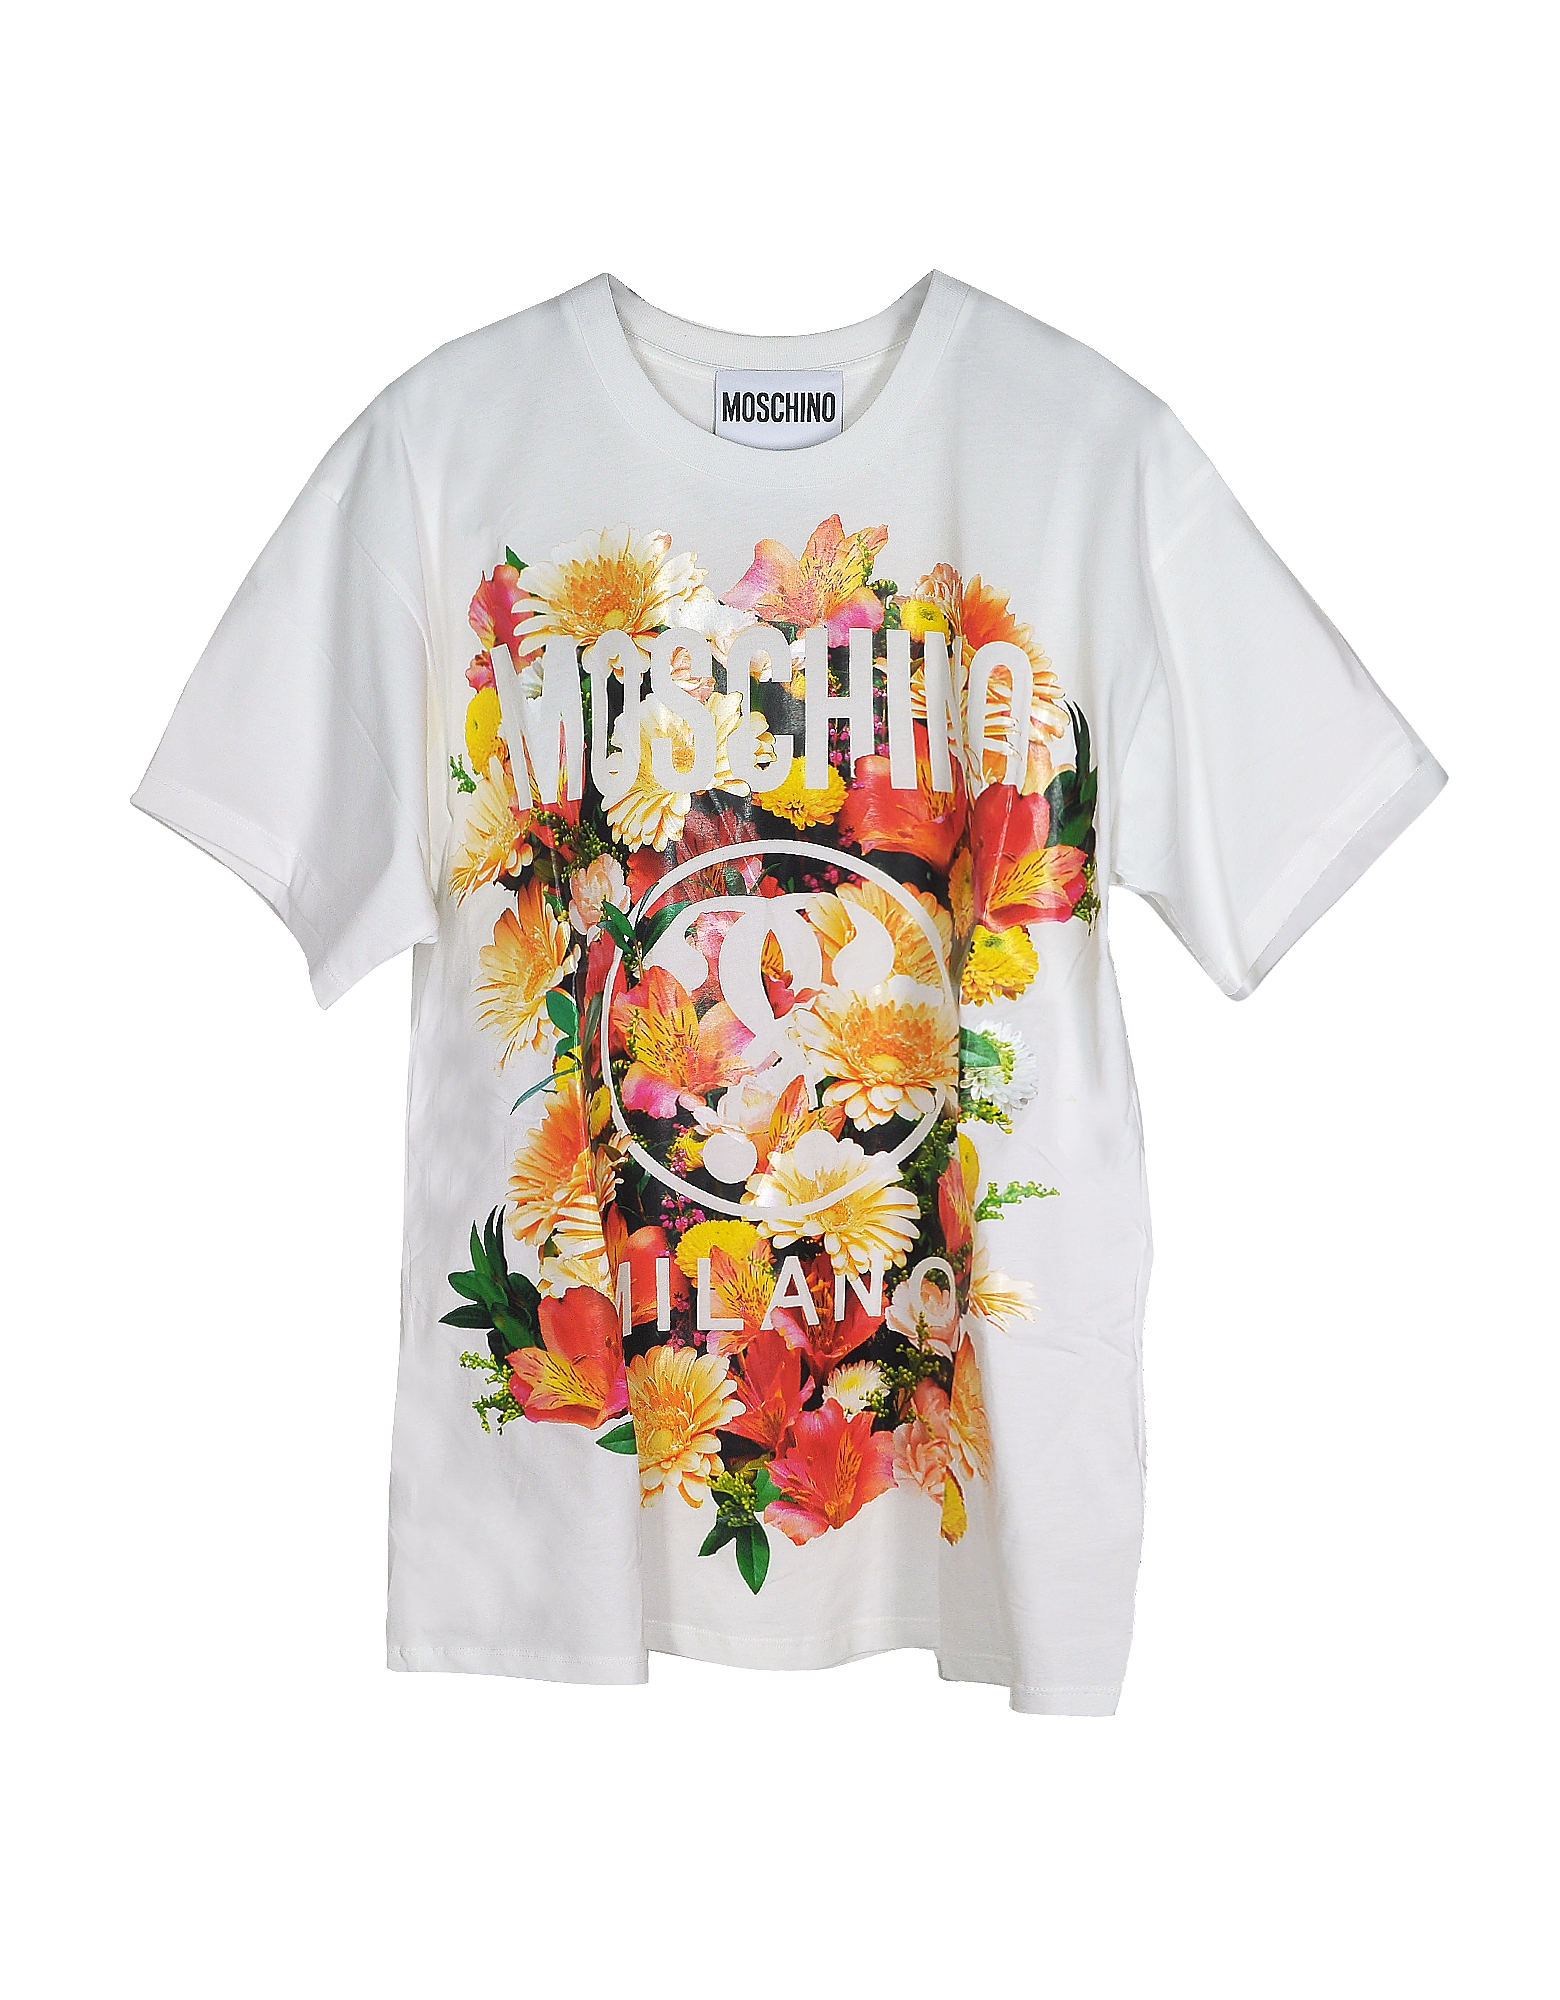 Moschino Designer T-Shirts & Tops, Floral Print Ivory Cotton Oversized Women's T-Shirt